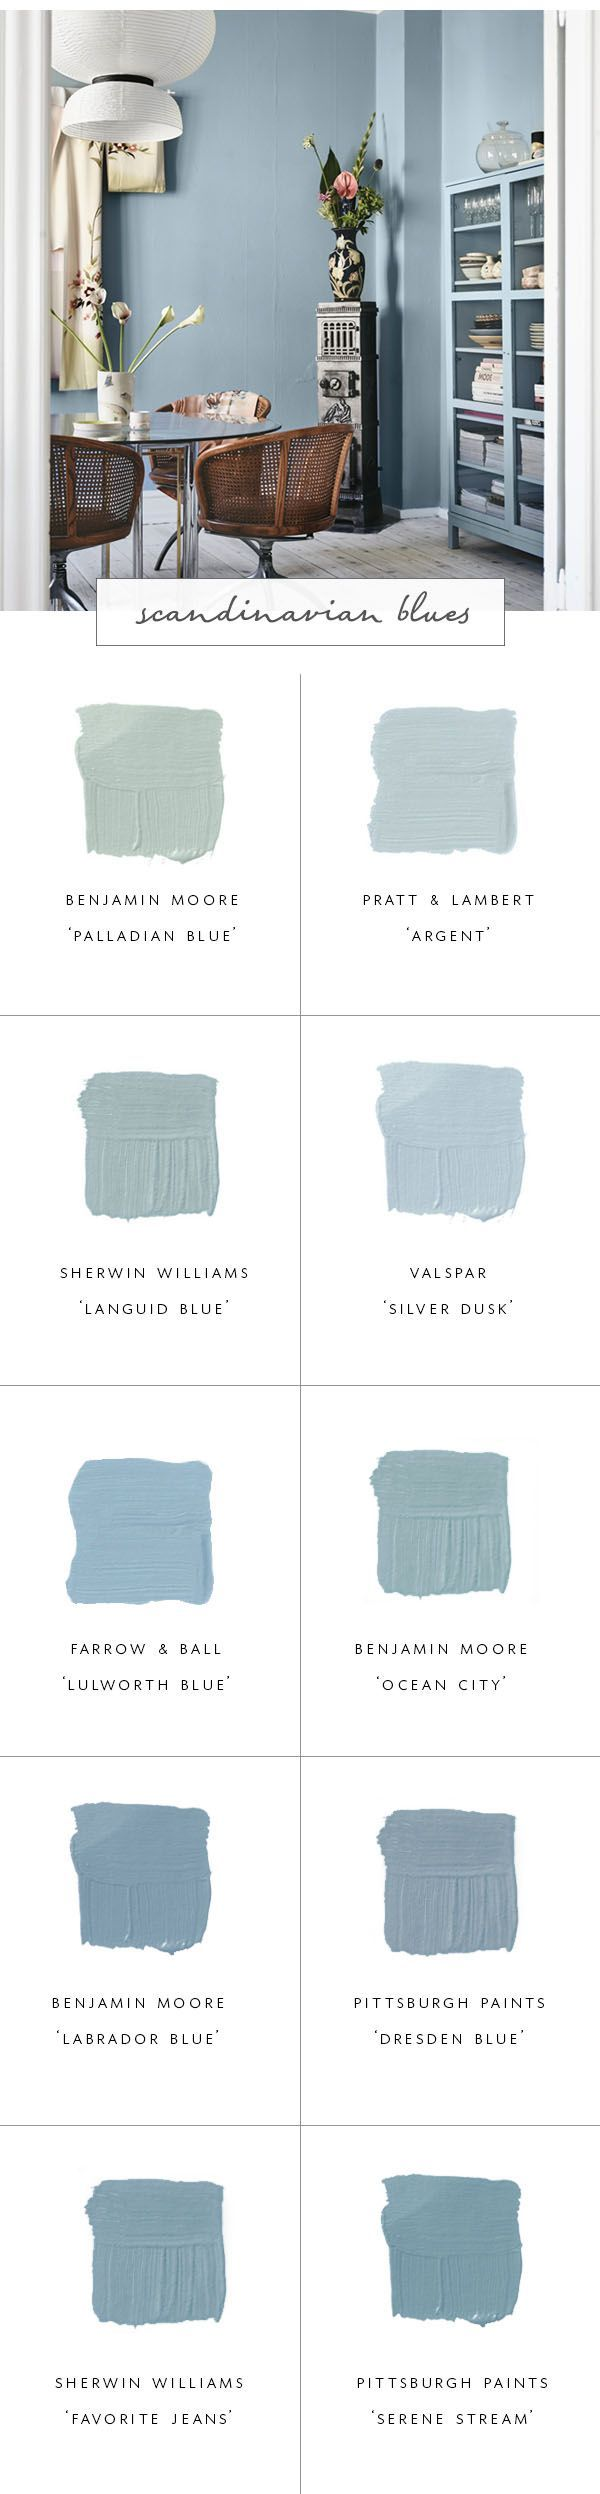 10 Perfect Scandinavian Blue Paint Colors For Your Home Coco Kelley Scandinavian Style Home Blue Paint Colors Blue Paint